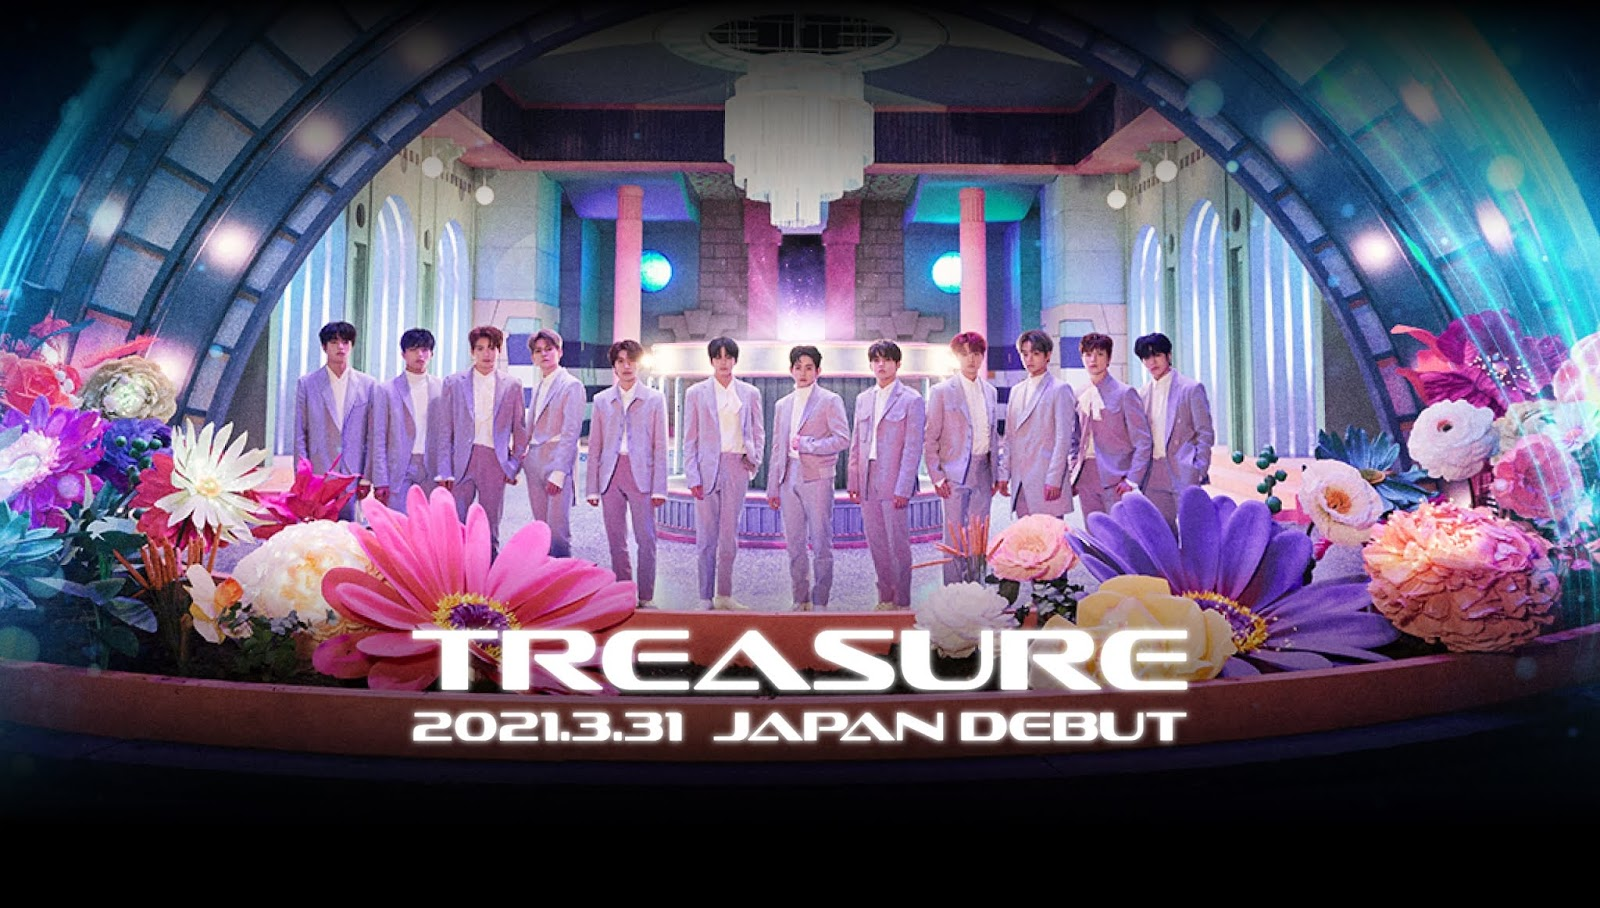 treasure debut japon 2021